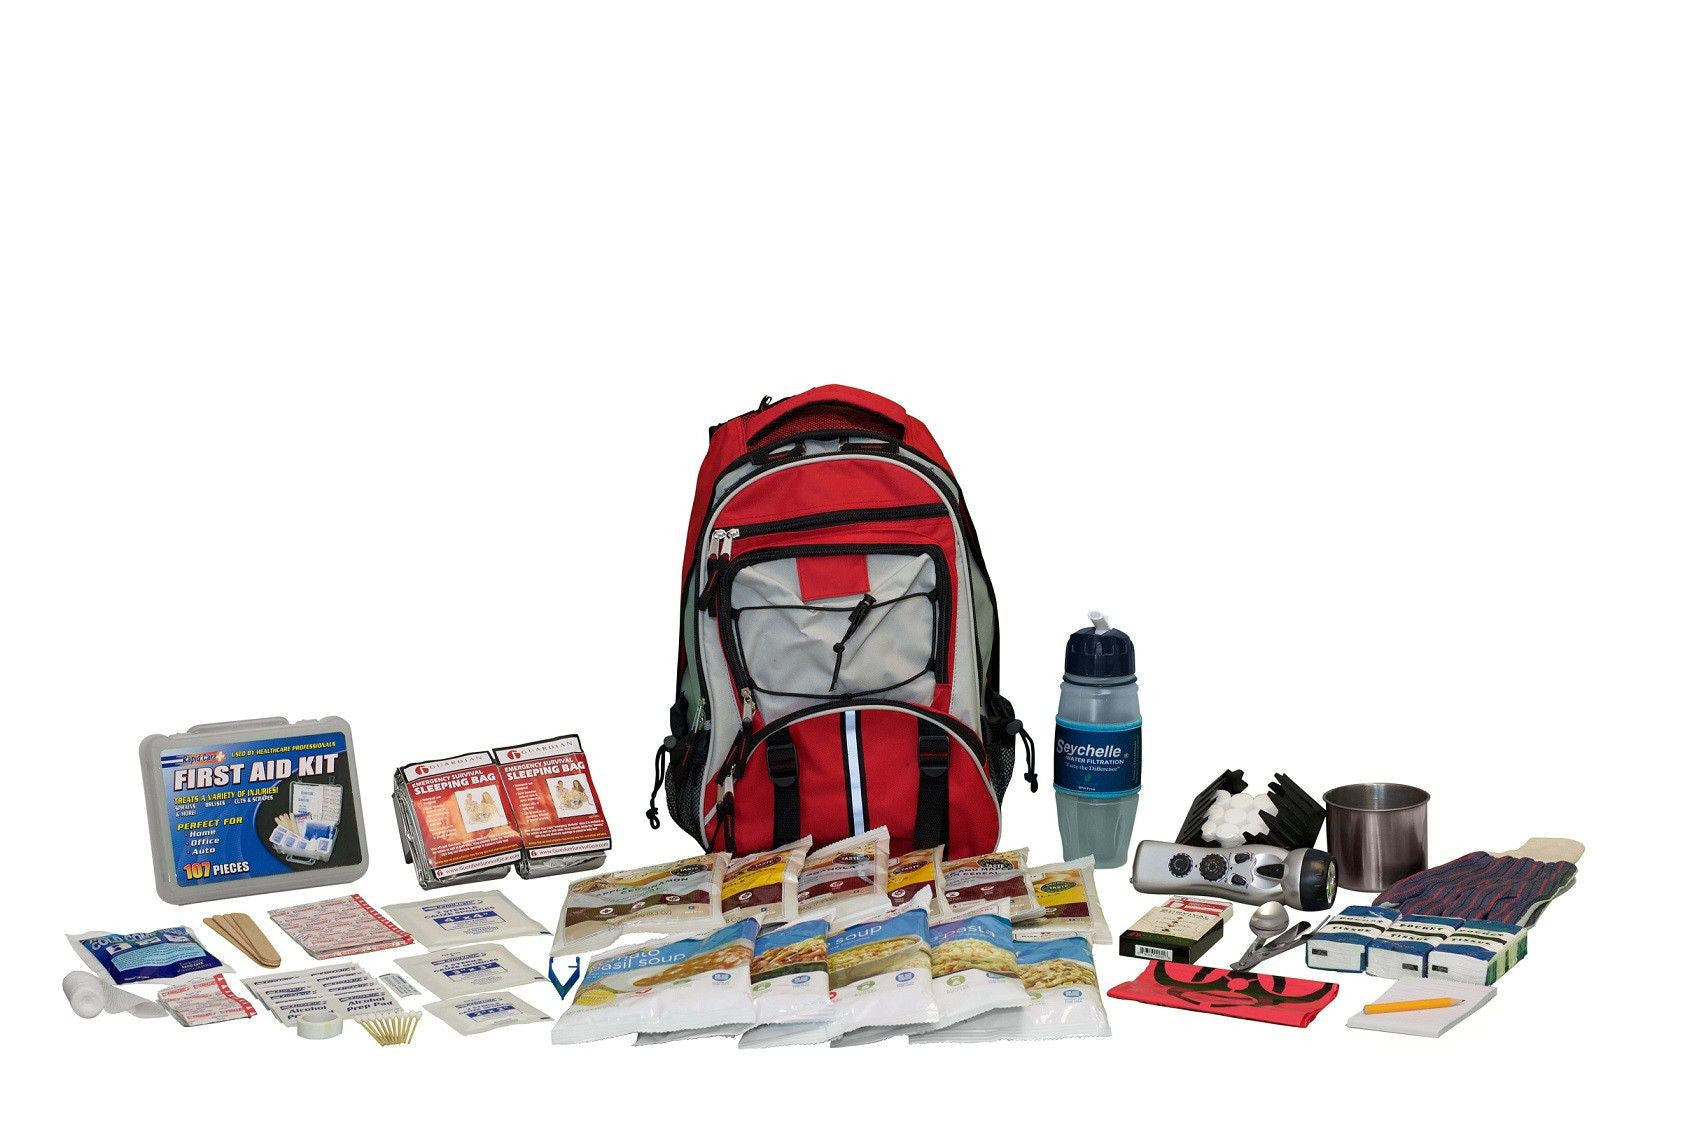 Food Storage Survival Kit - Tornado Kit - Tornado Emergency Kit - Tornado Safety - Tornado Survival Kit - Disaster Kit - Preparing for a Tornado - Tornado Preparedness